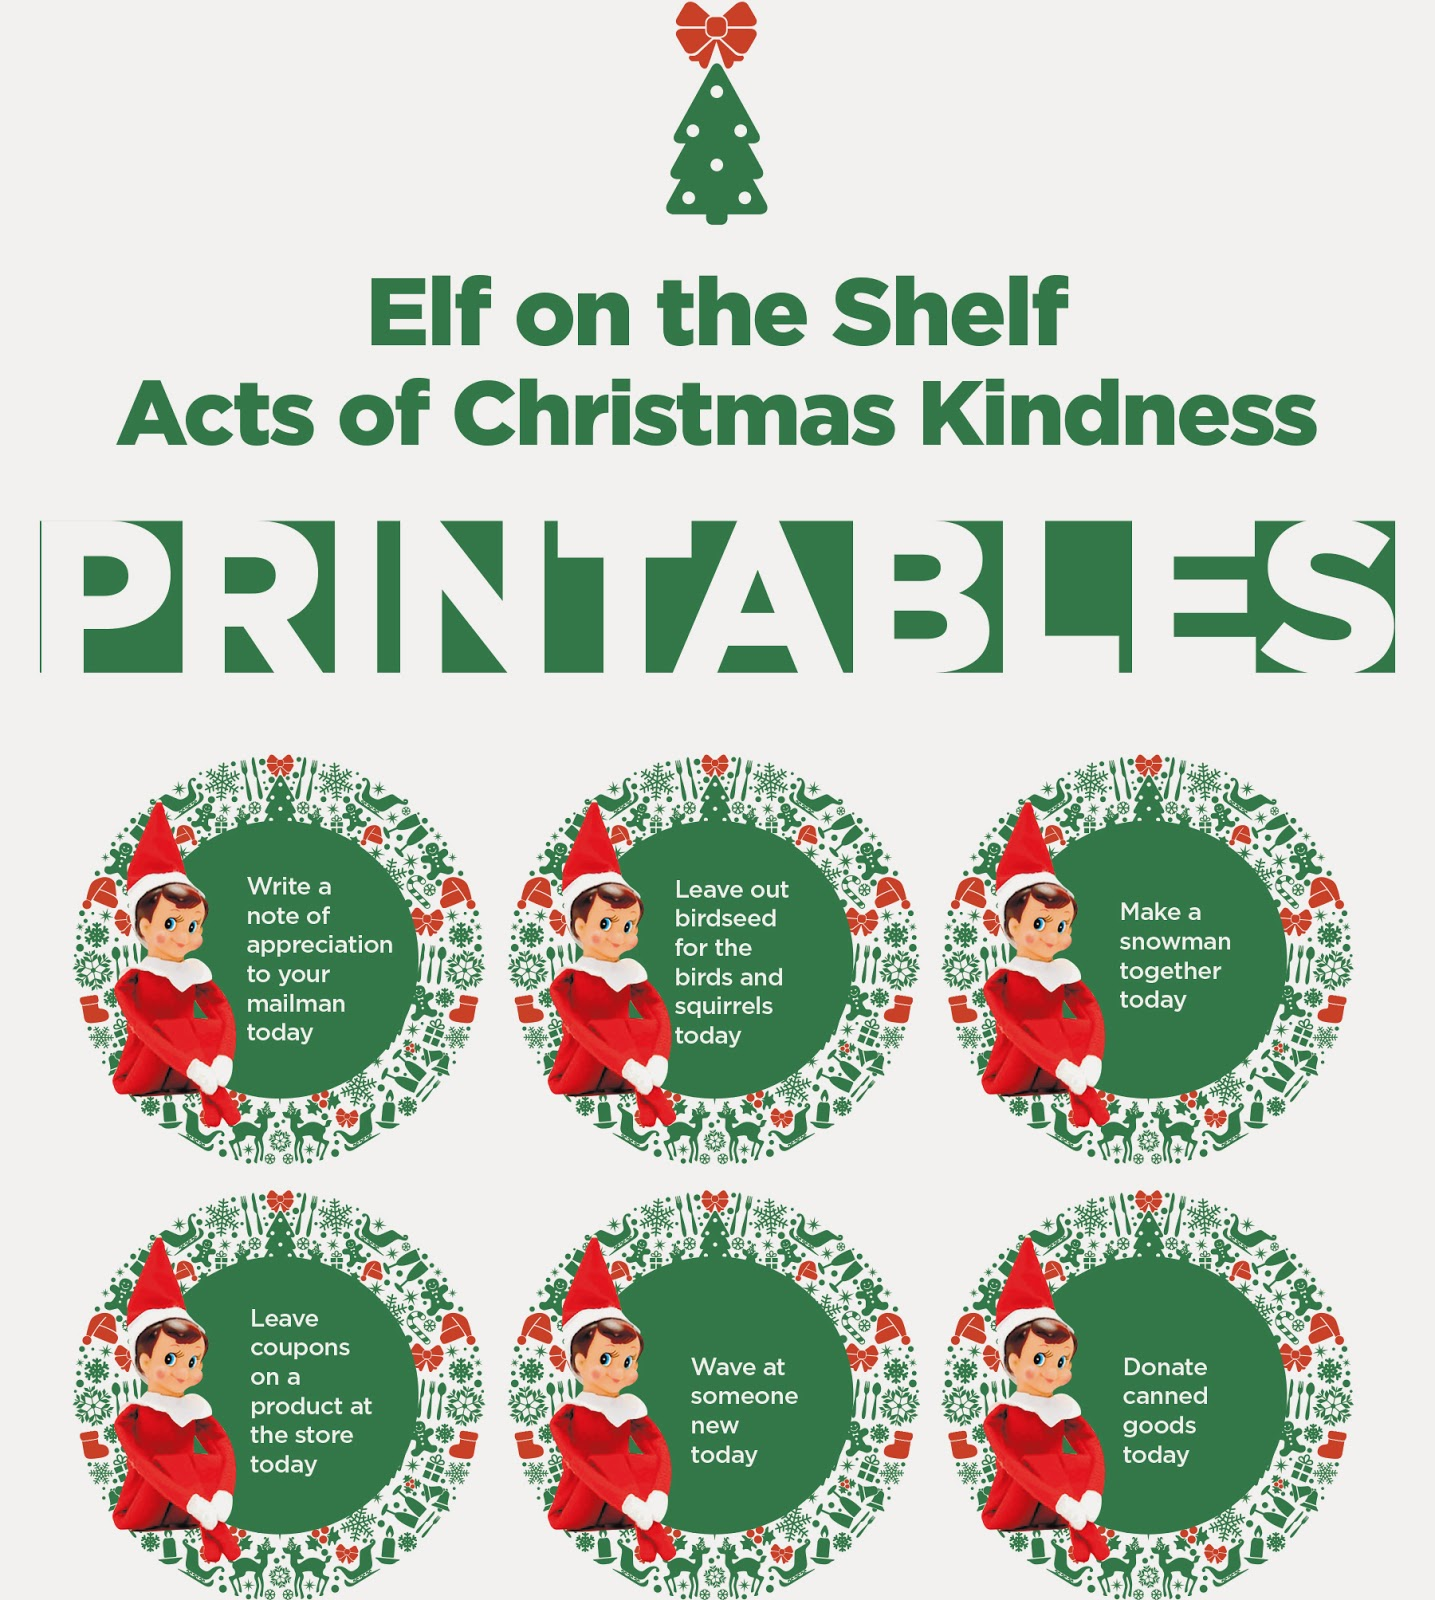 Acts of kindness for your Elf on a Shelf